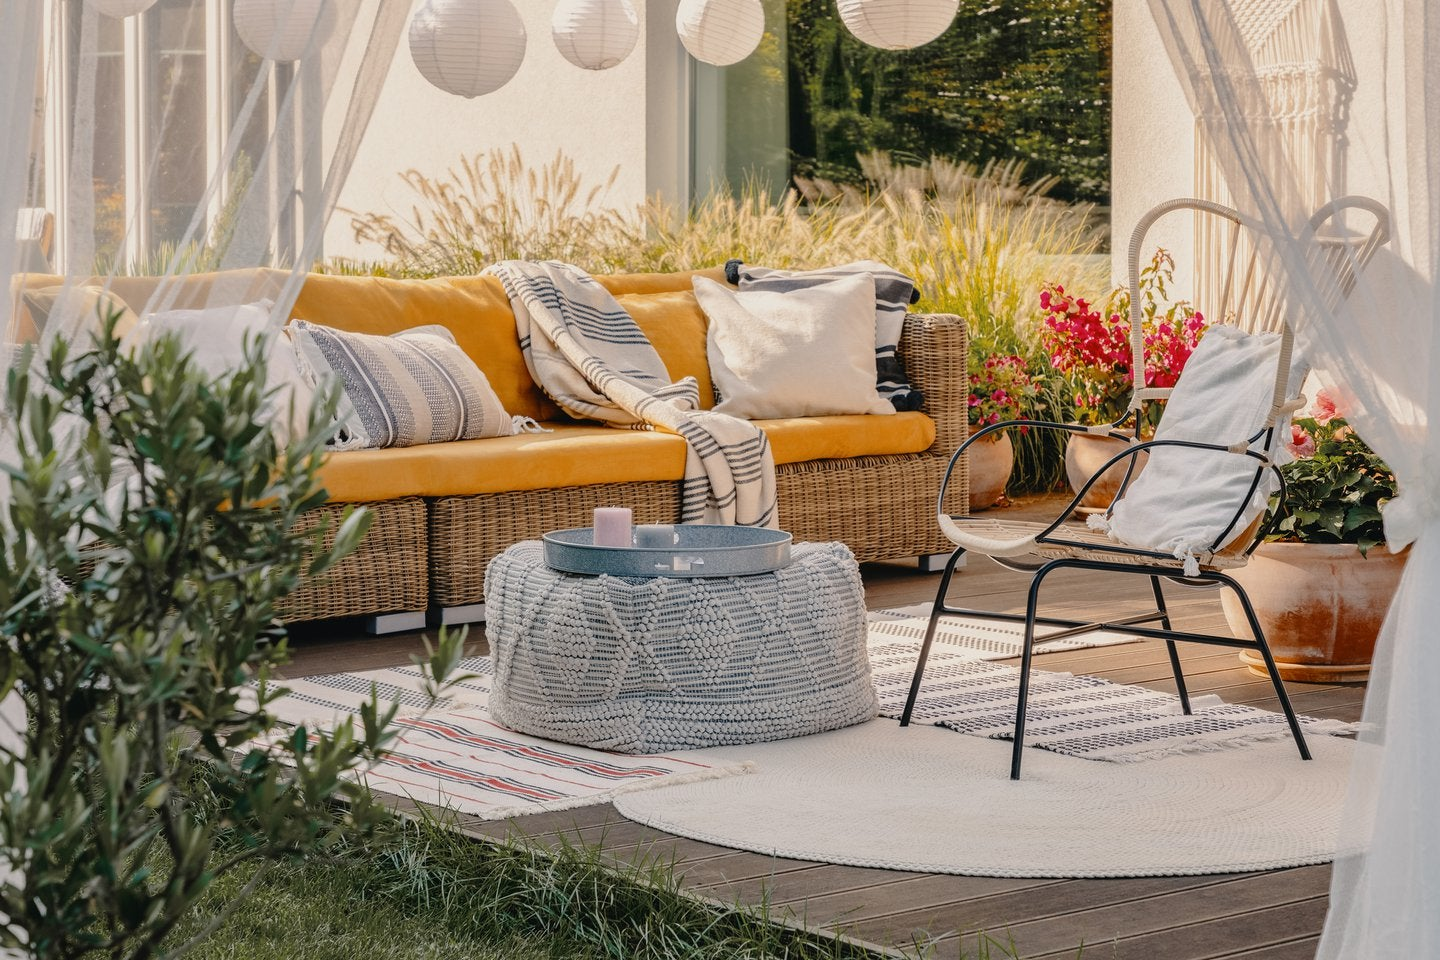 Outdoor Living Space Design turn your yard into an all-seasons living space | millionacres